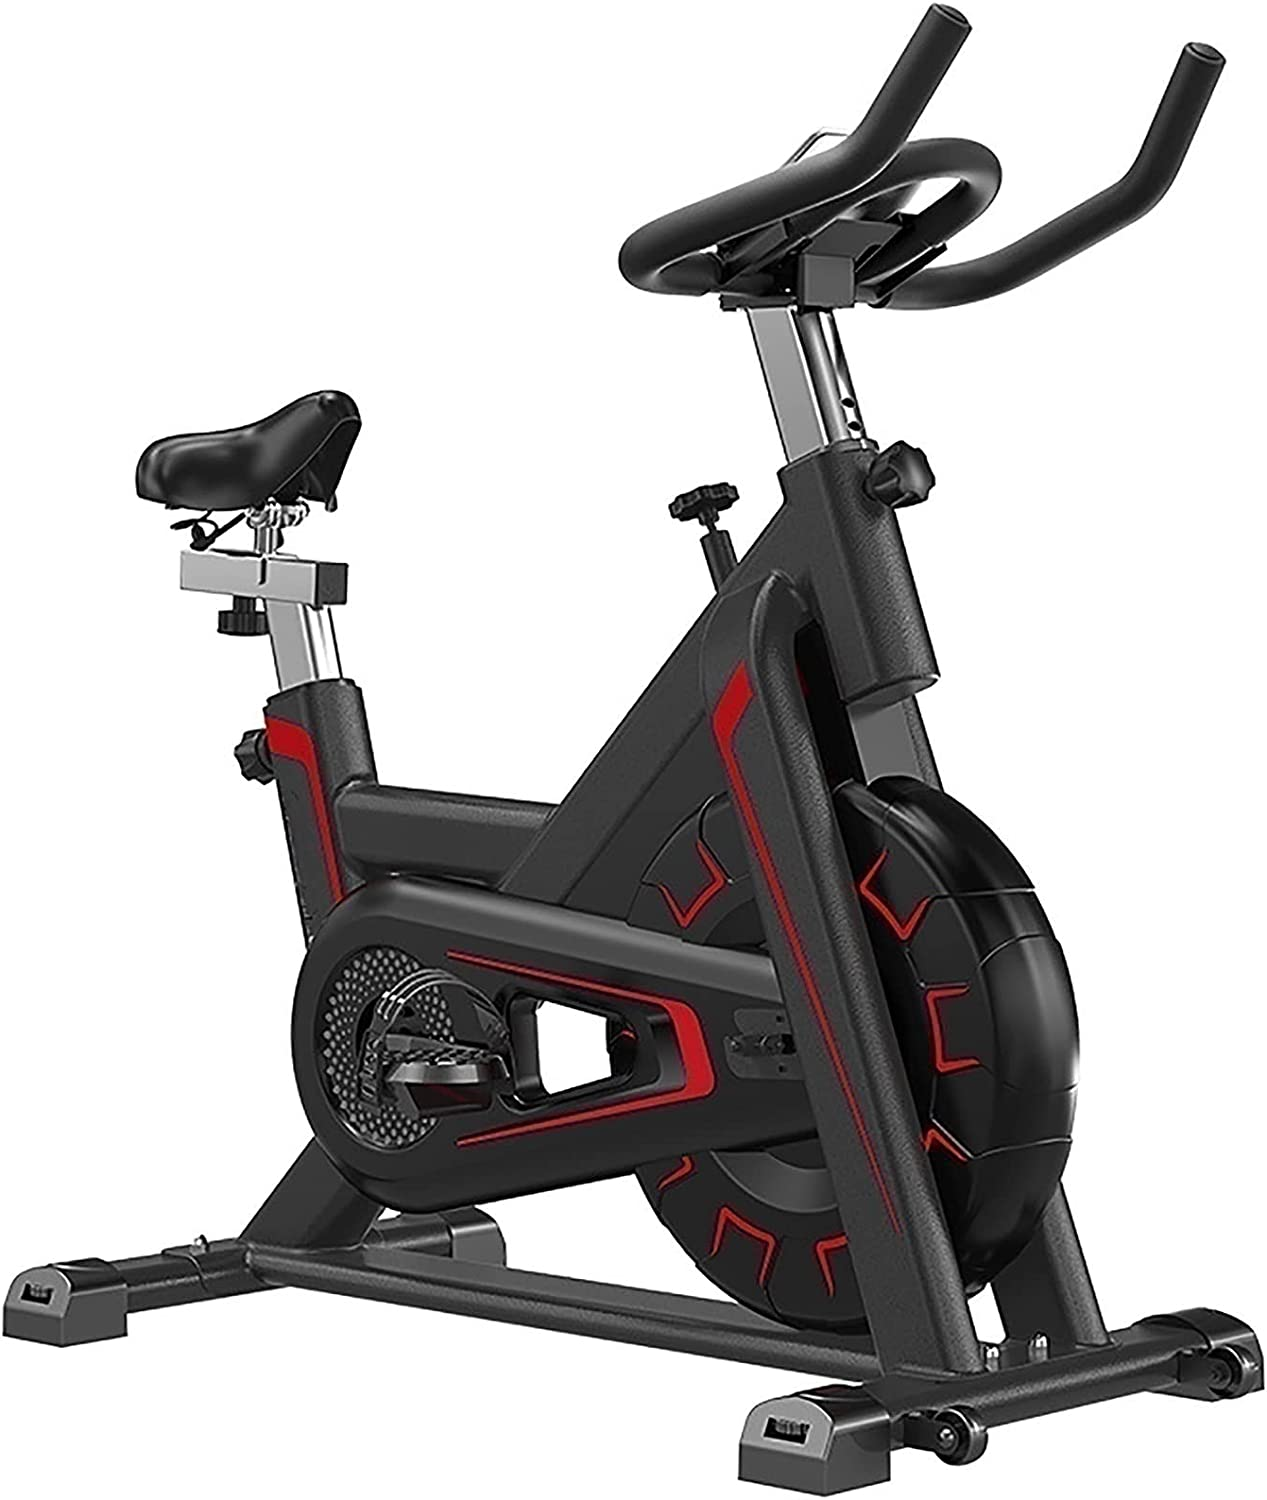 HSOSK Unisex latest Indoor Exercise Bike H Stationary Max 90% OFF Bikes Spin